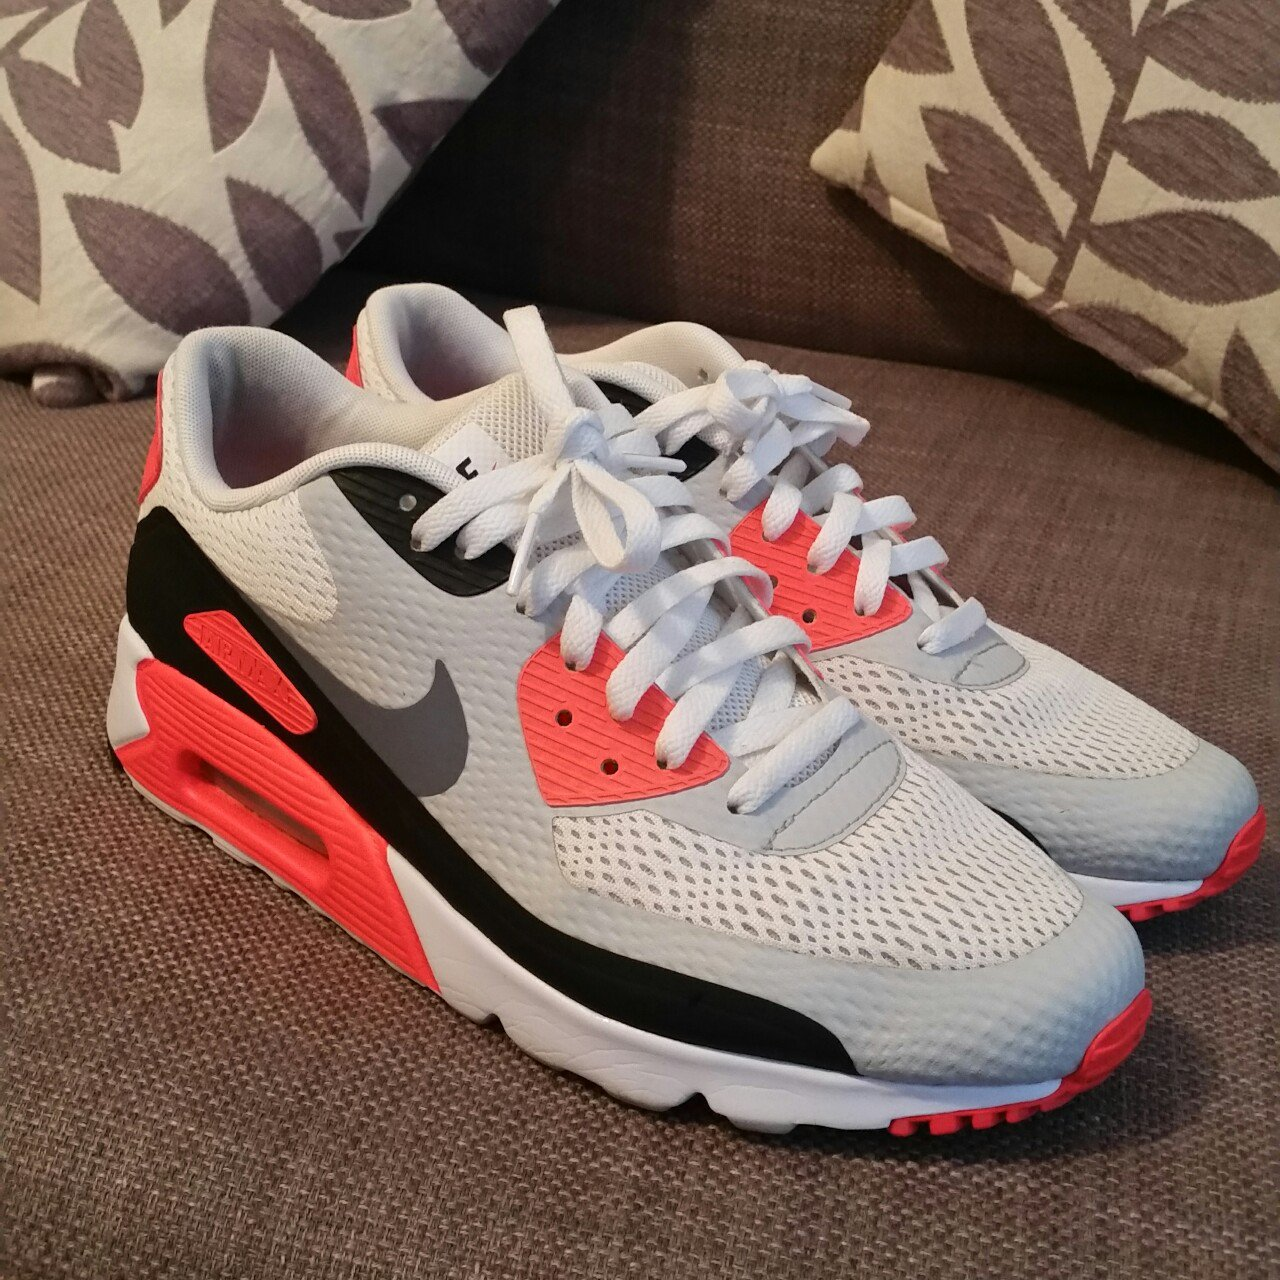 190a979601ff3e Nike air max 90 ultra  infrared  - Uk9 - previously worn - - Depop